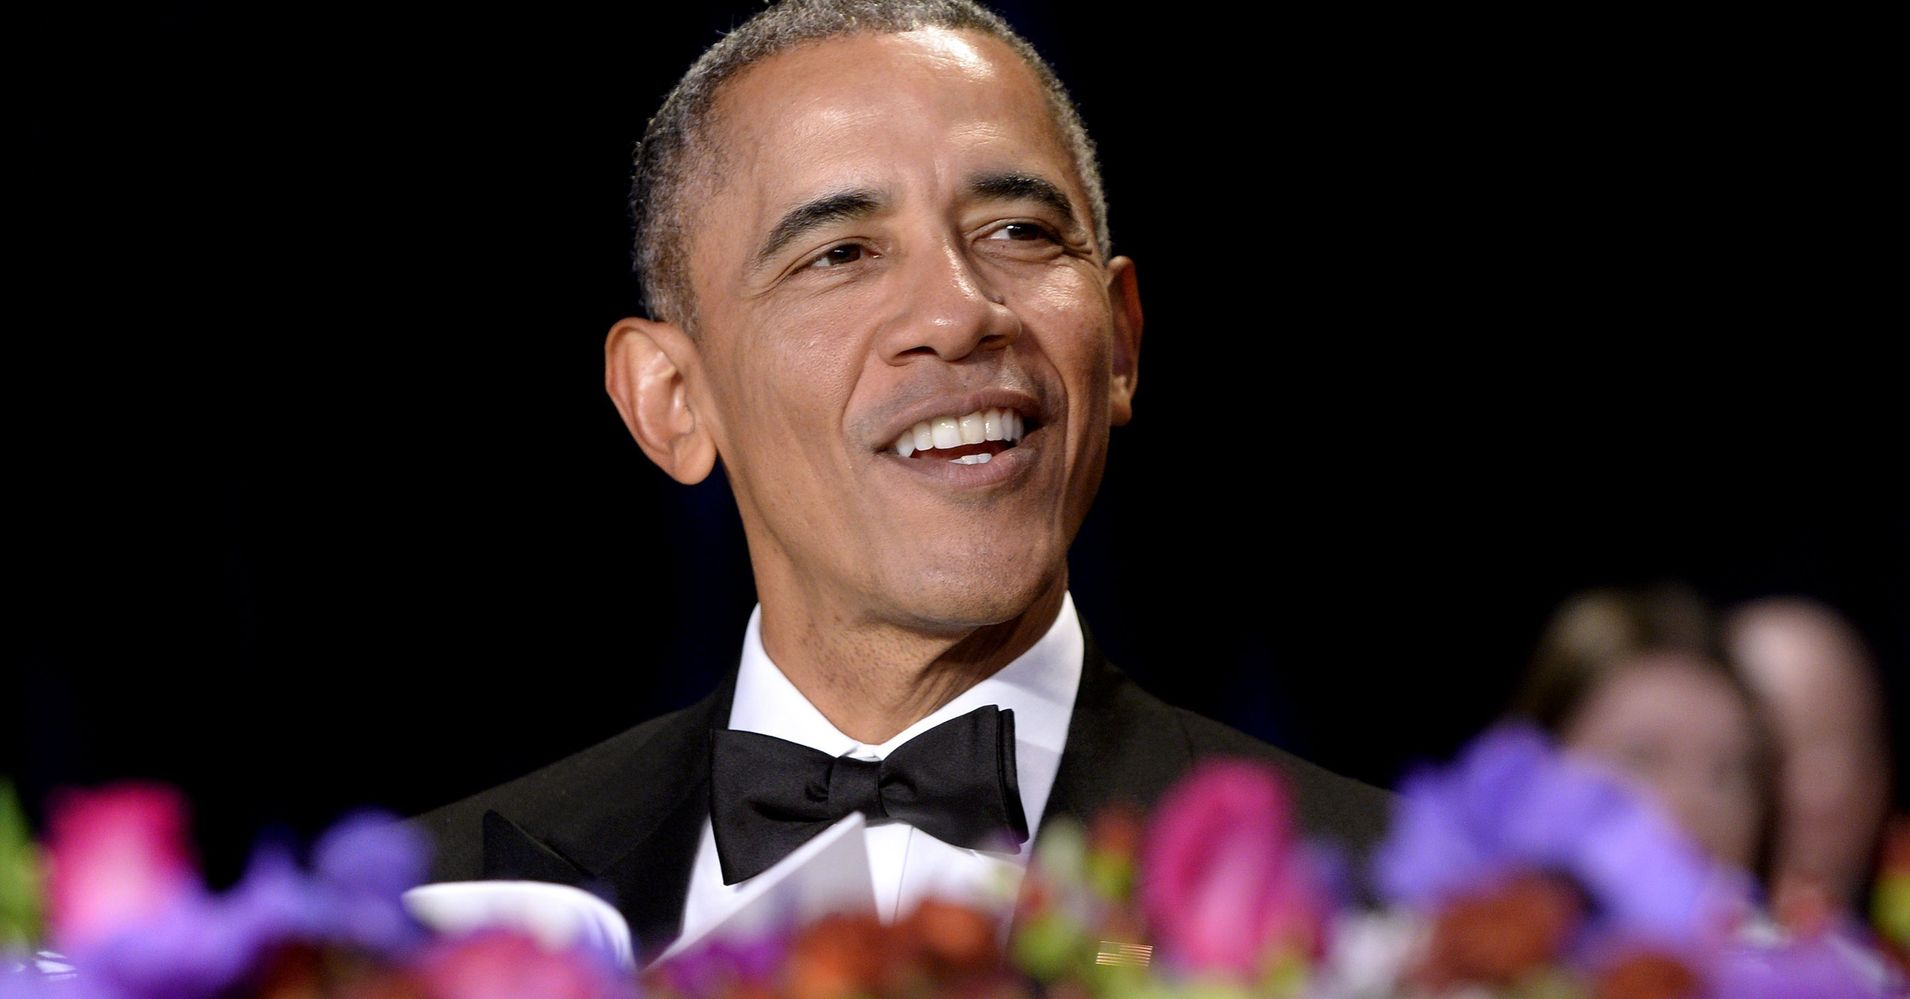 the black latino alliance during the obama President barack obama was not so fortunate when he took office, the economy had already lost 44 million jobs in the preceding 12 months during obama's first 13 months, the economy continued.